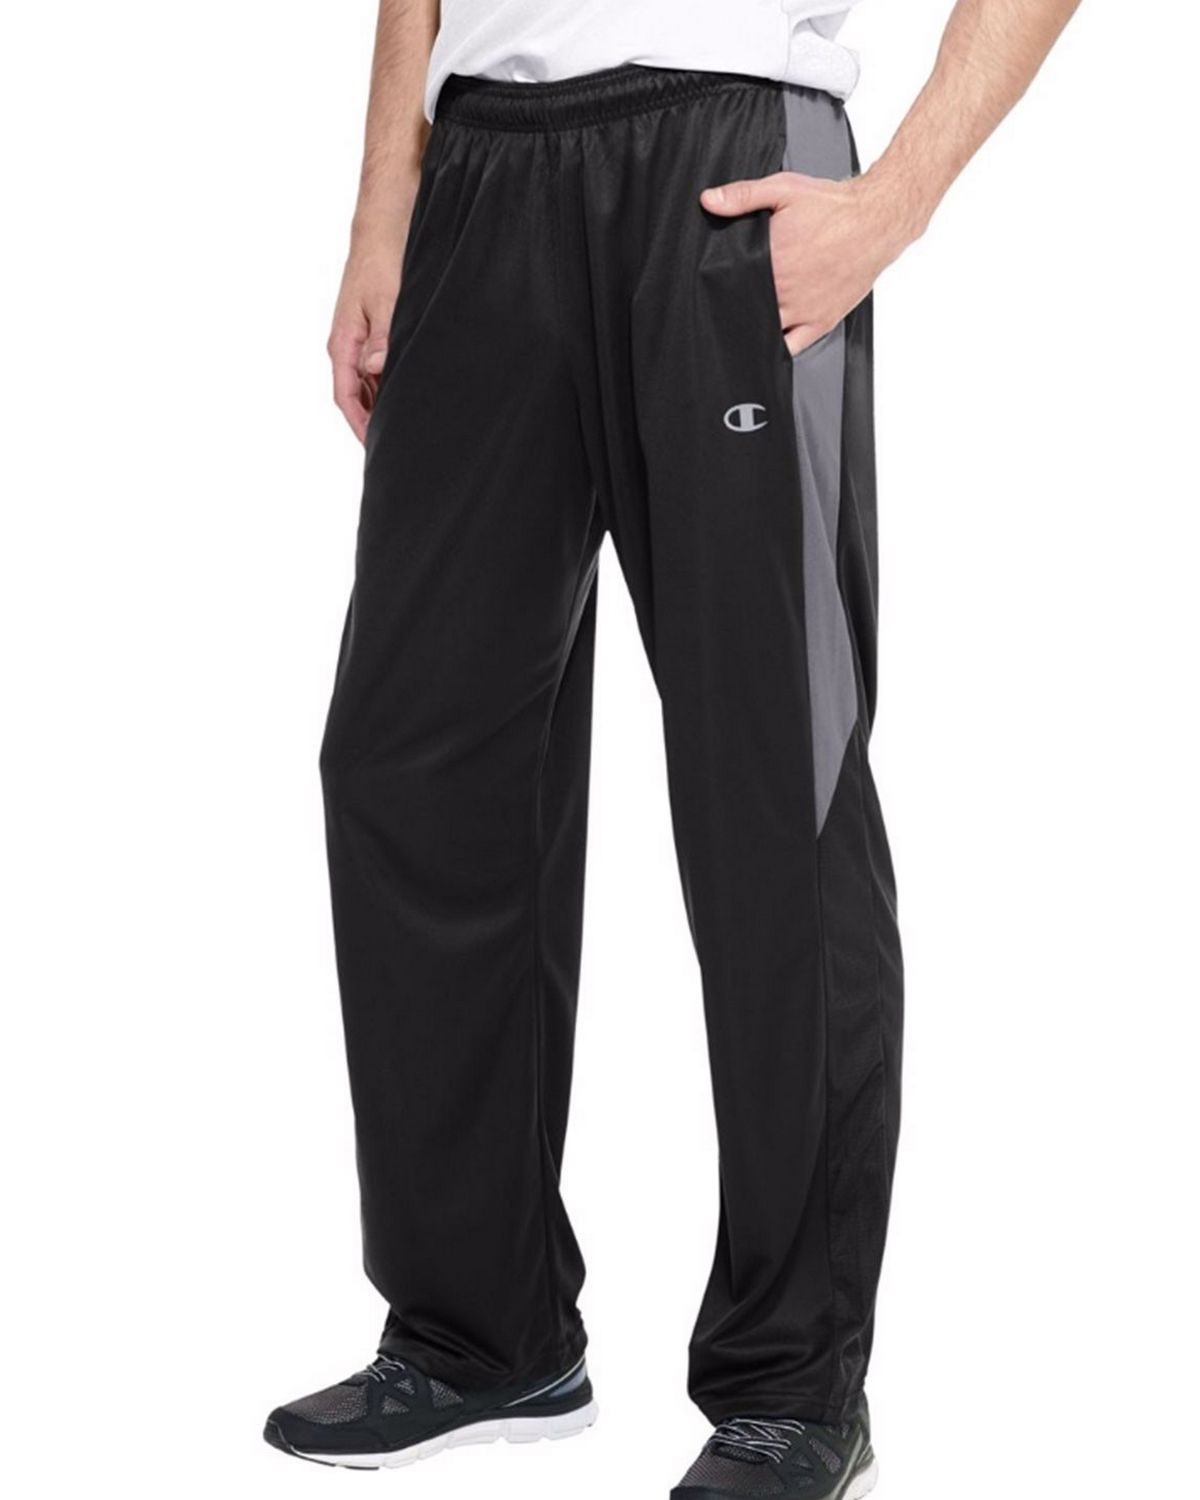 Champion P6609 Vapor PowerTrain Knit Training Pants - Black/Slate Grey - M P6609